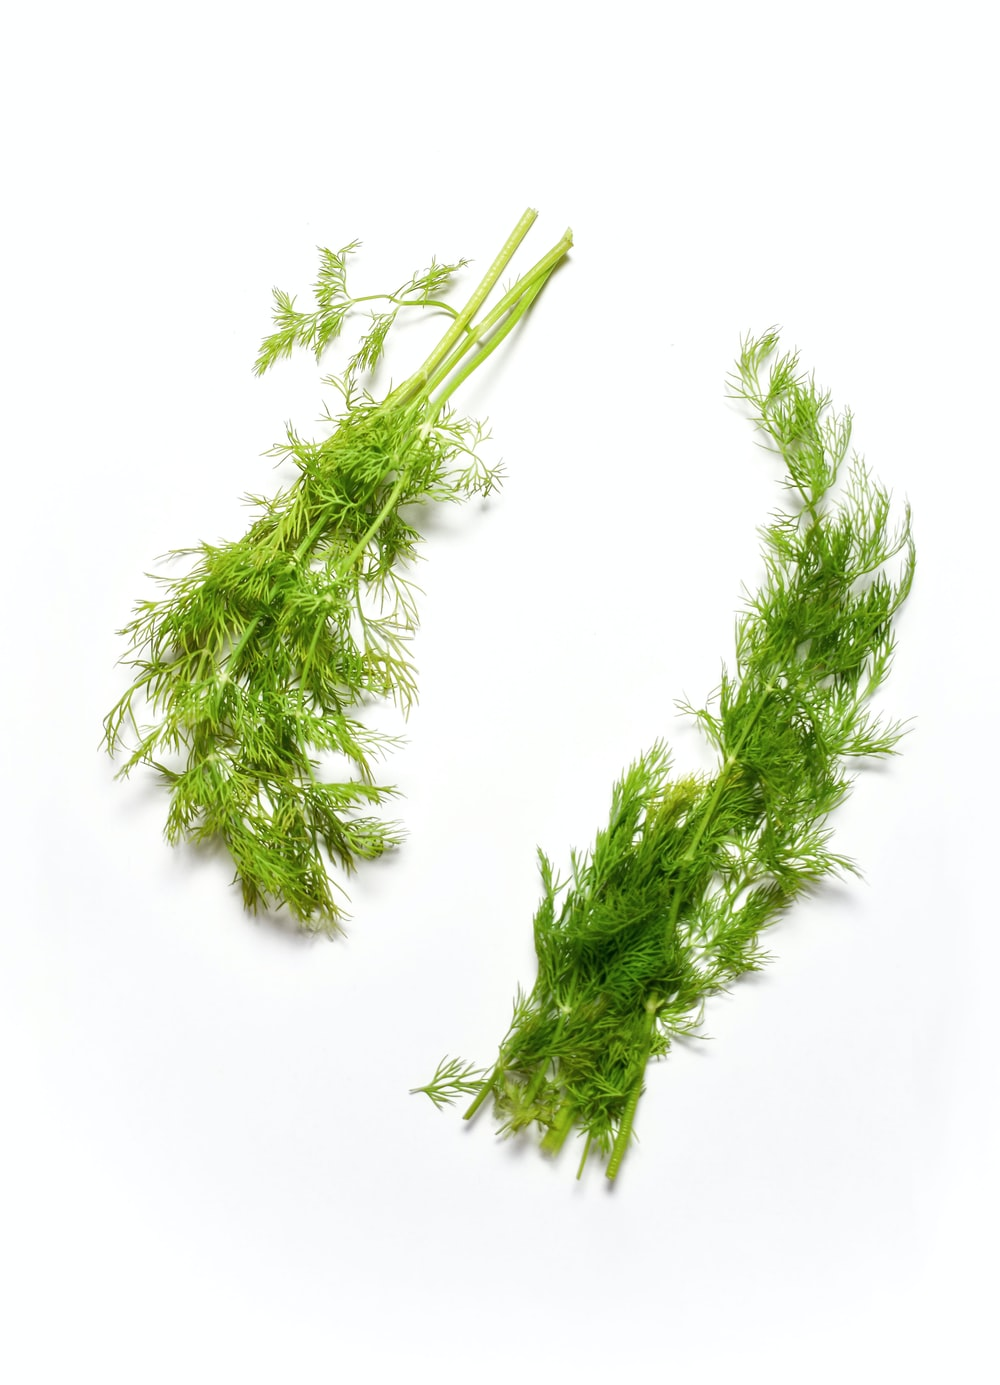 green plant on white background